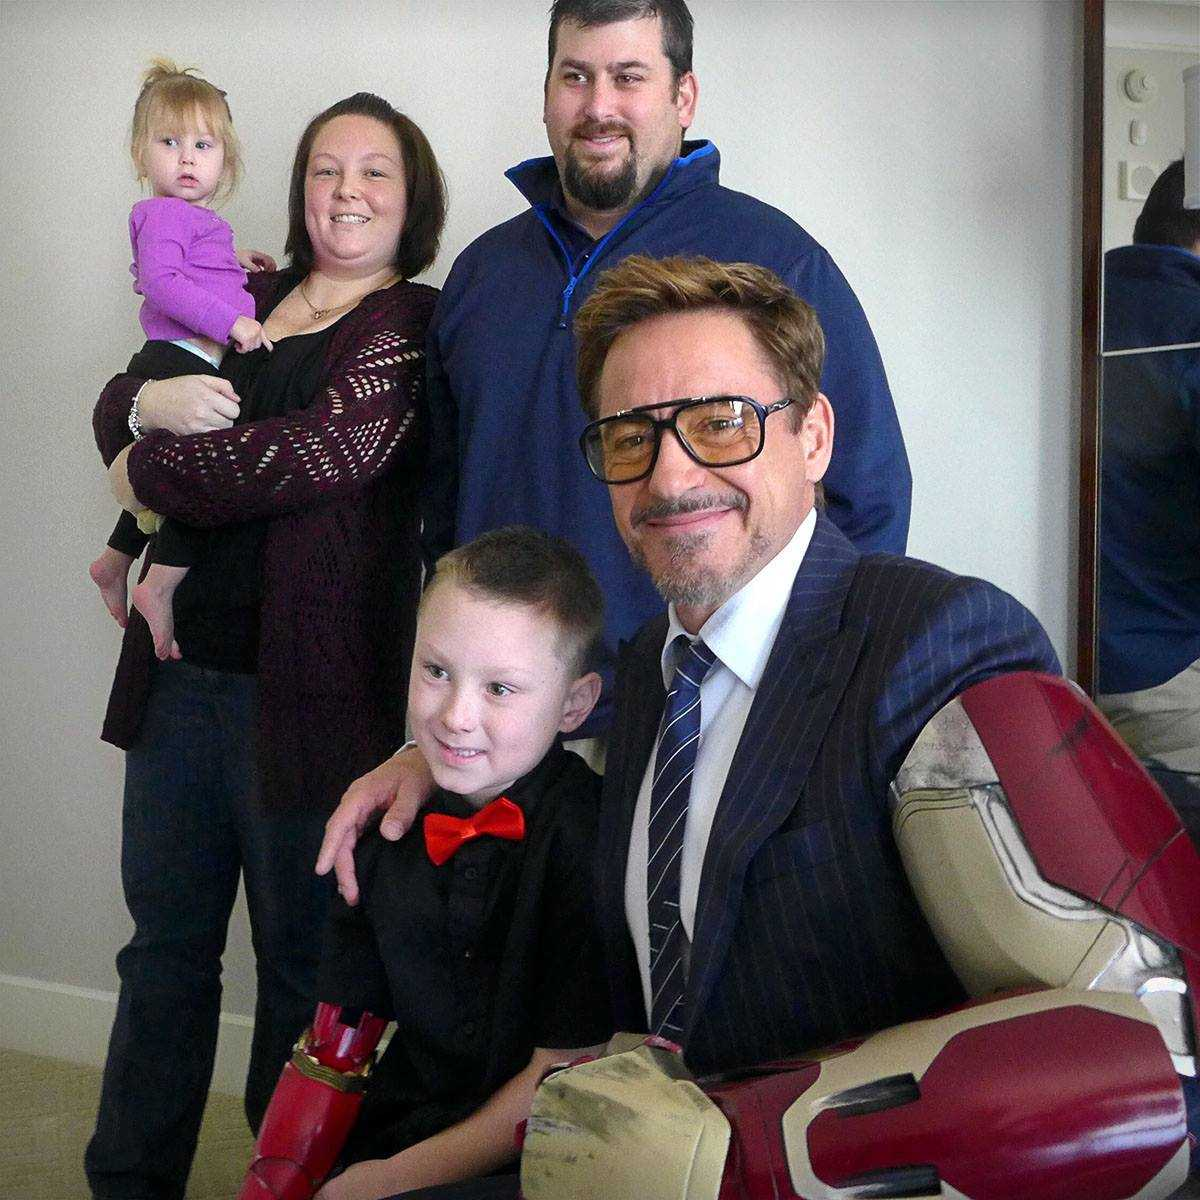 robert-downey-jr-3d-printed-prosthetics-for-children